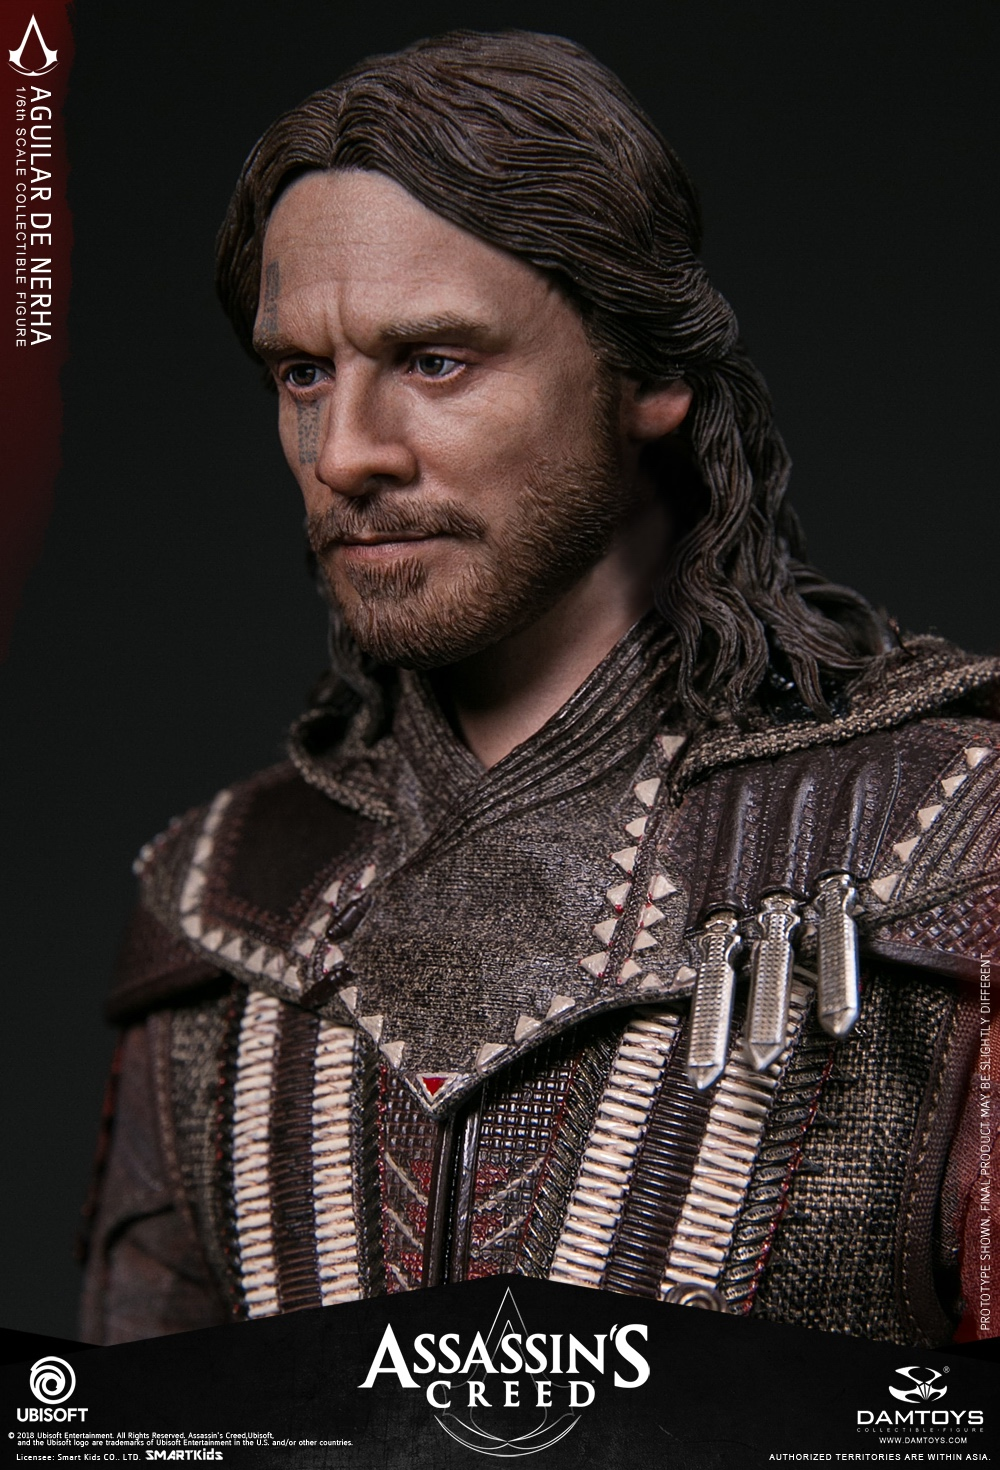 NEW PRODUCT: Damtoys–Assassin's Creed –1/6th scale Aguilar Collectible Figure Specifications 130723lvdbpppwlvi377hg